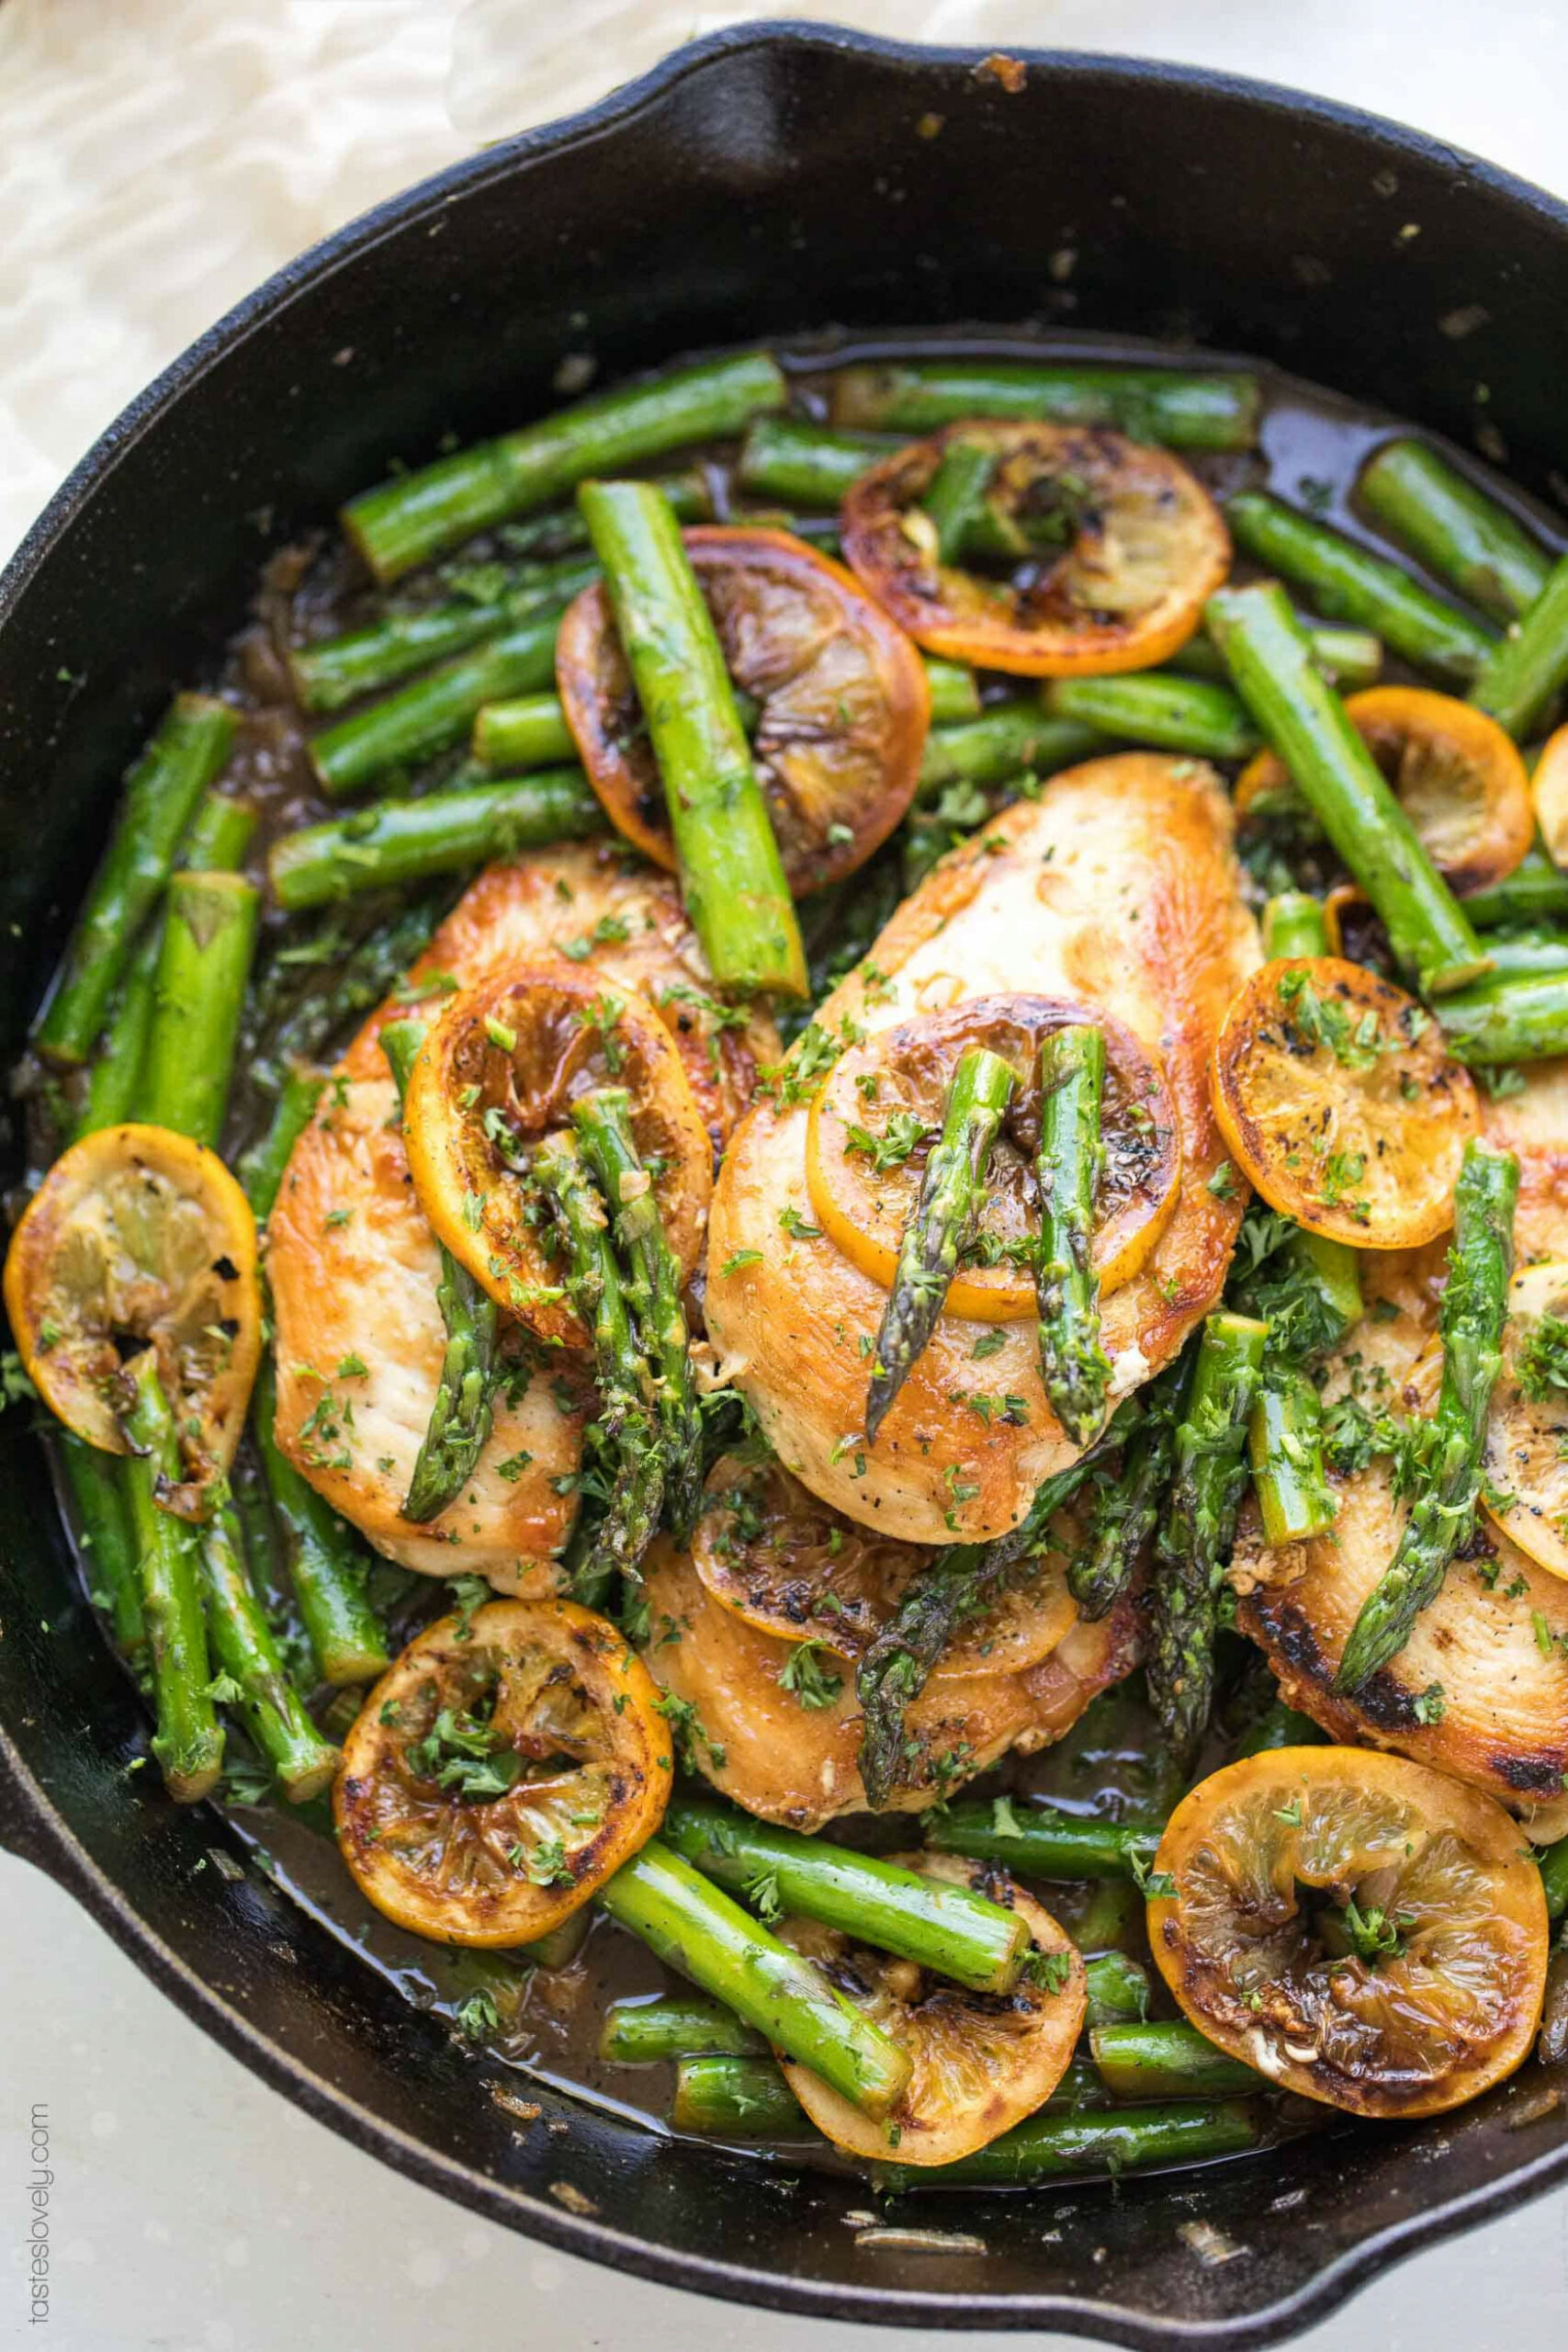 Paleo Lemon Honey Chicken & Asparagus Skillet - Tastes Lovely - dairy free recipes dinner